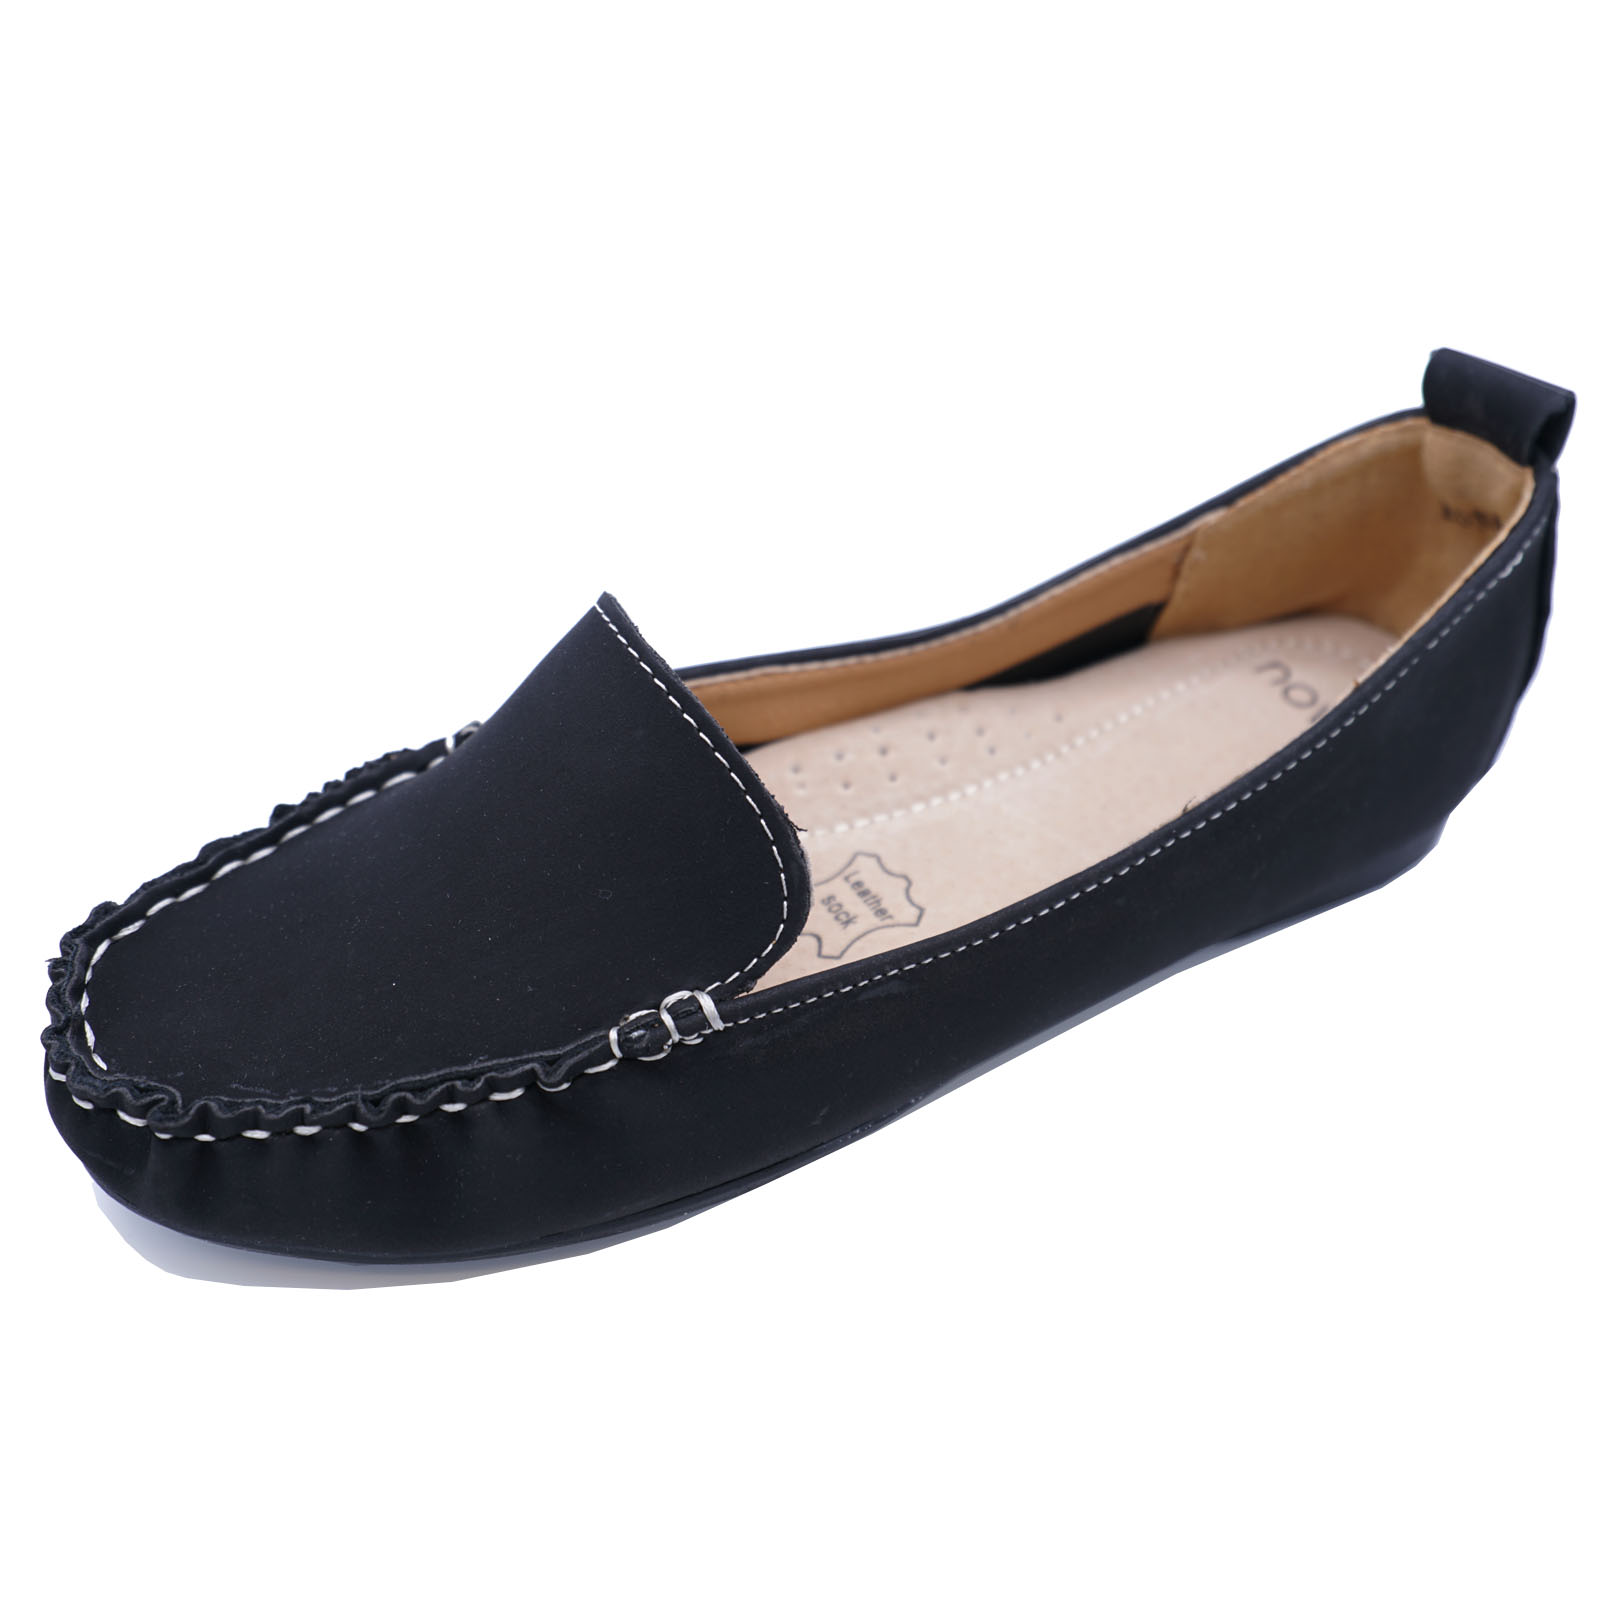 womens black leather slip on comfy moccasin casual comfort